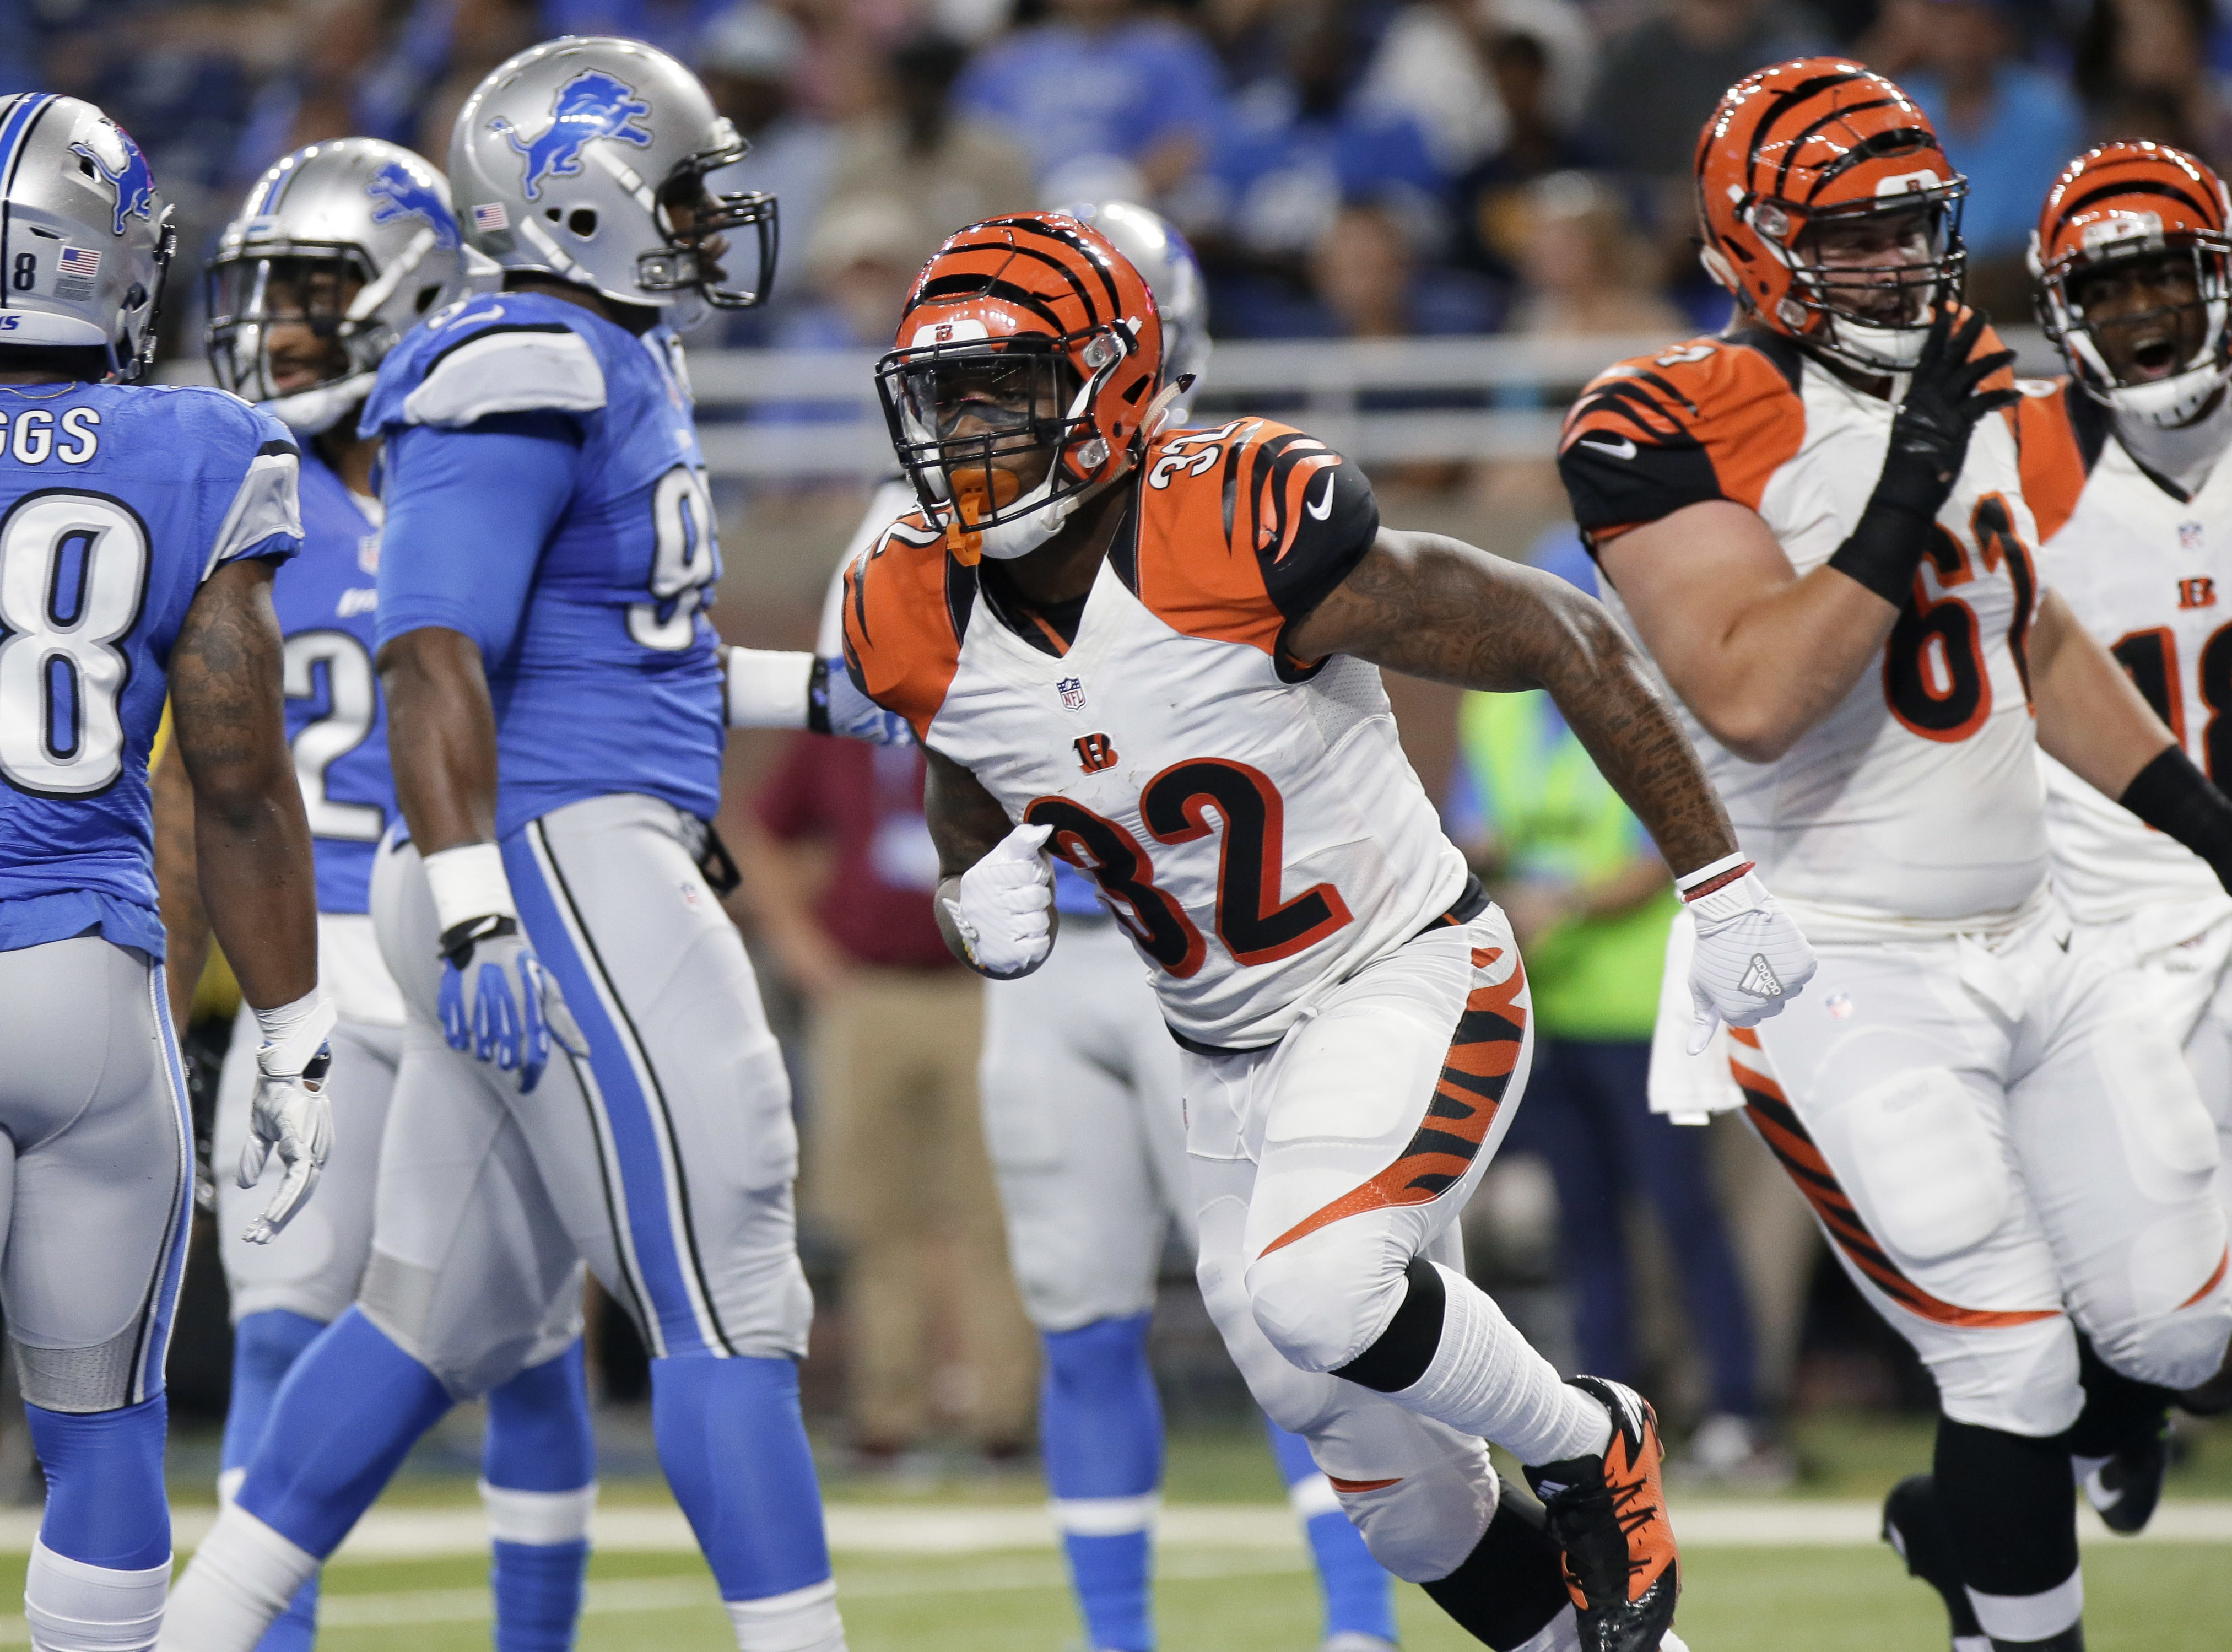 Cincinnati Bengals running back Jeremy Hill (32) celebrates his 9-yard rushing touchdown against the Detroit Lions in the first half of an NFL preseason football game in Detroit, Thursday, Aug. 18, 2016. (AP Photo/Duane Burleson)